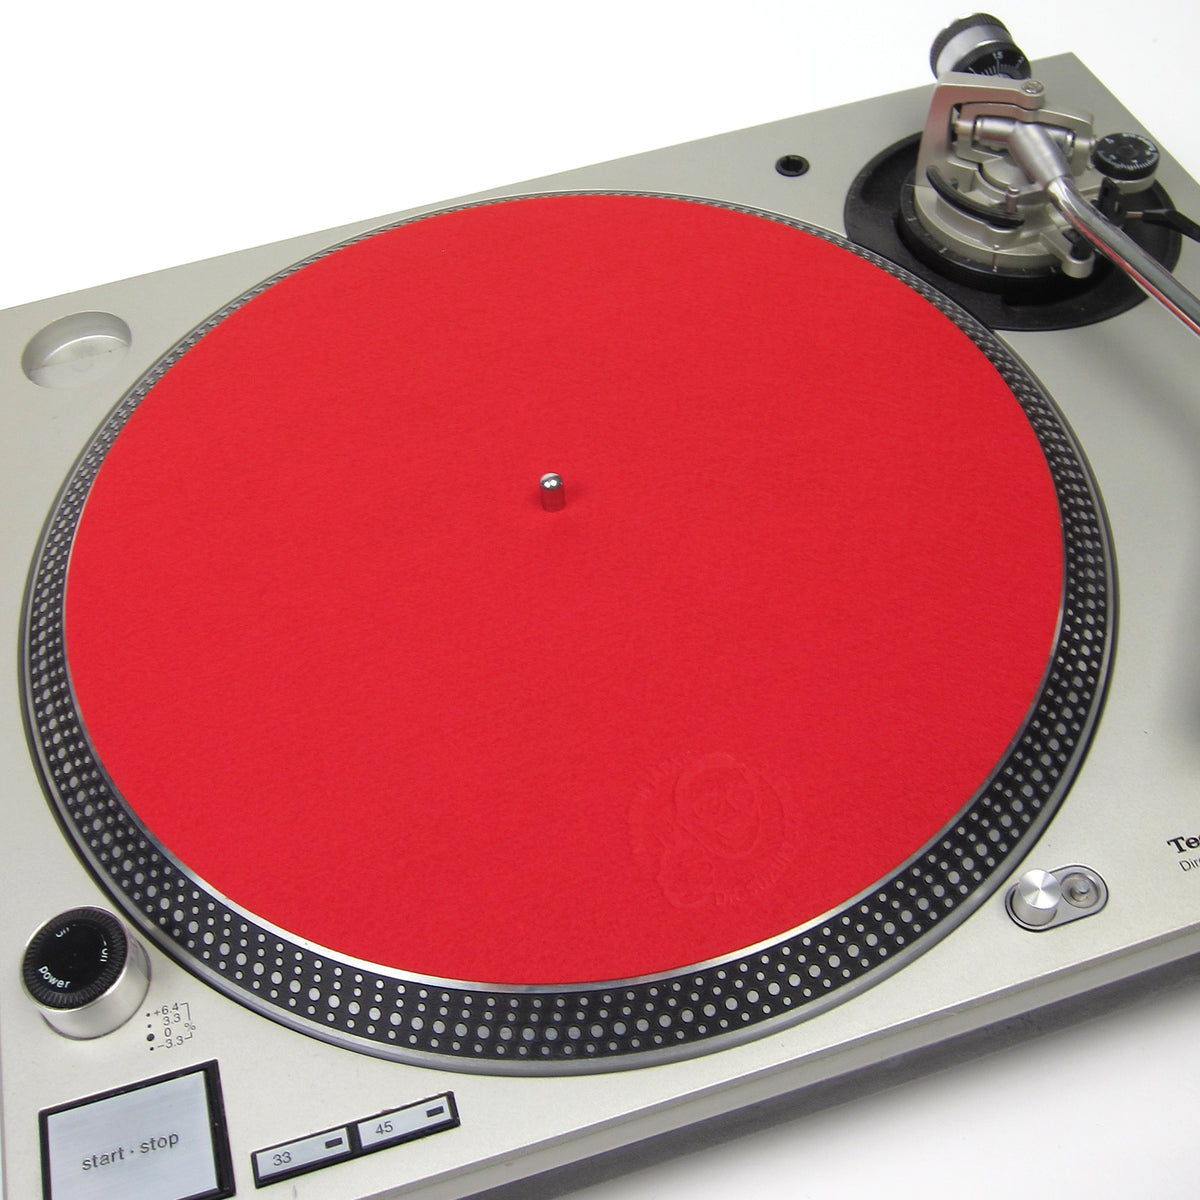 Stokyo: Dr. Suzuki Mix Edition Slipmats (Special Color) - Red